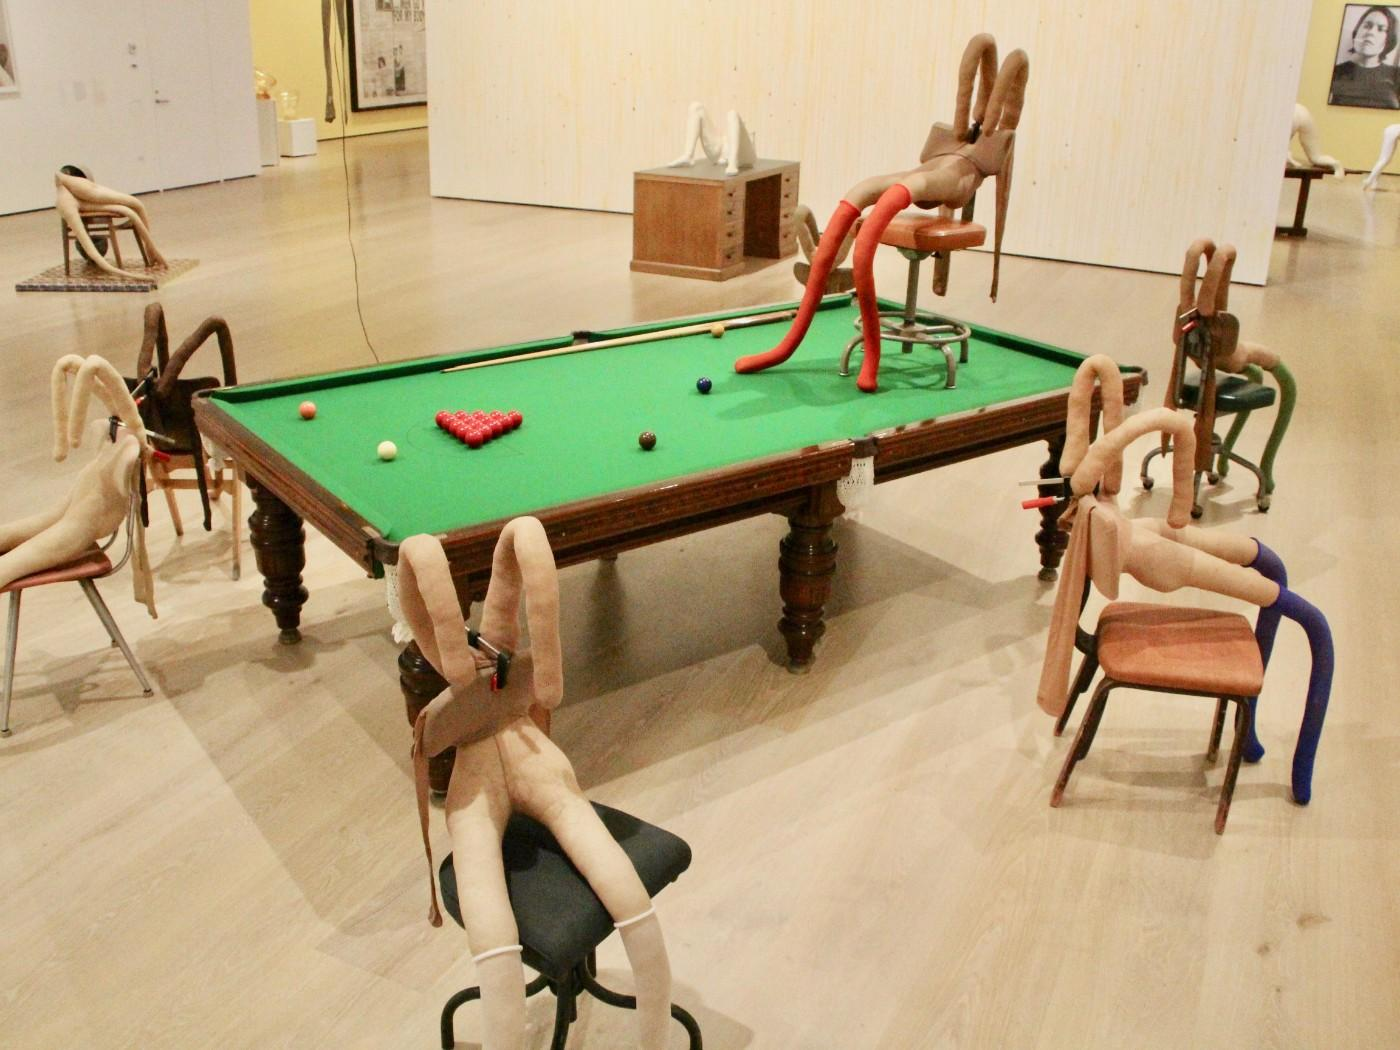 Installation view, Sarah Lucas: Au Naturel, at the Hammer Museum through September 1